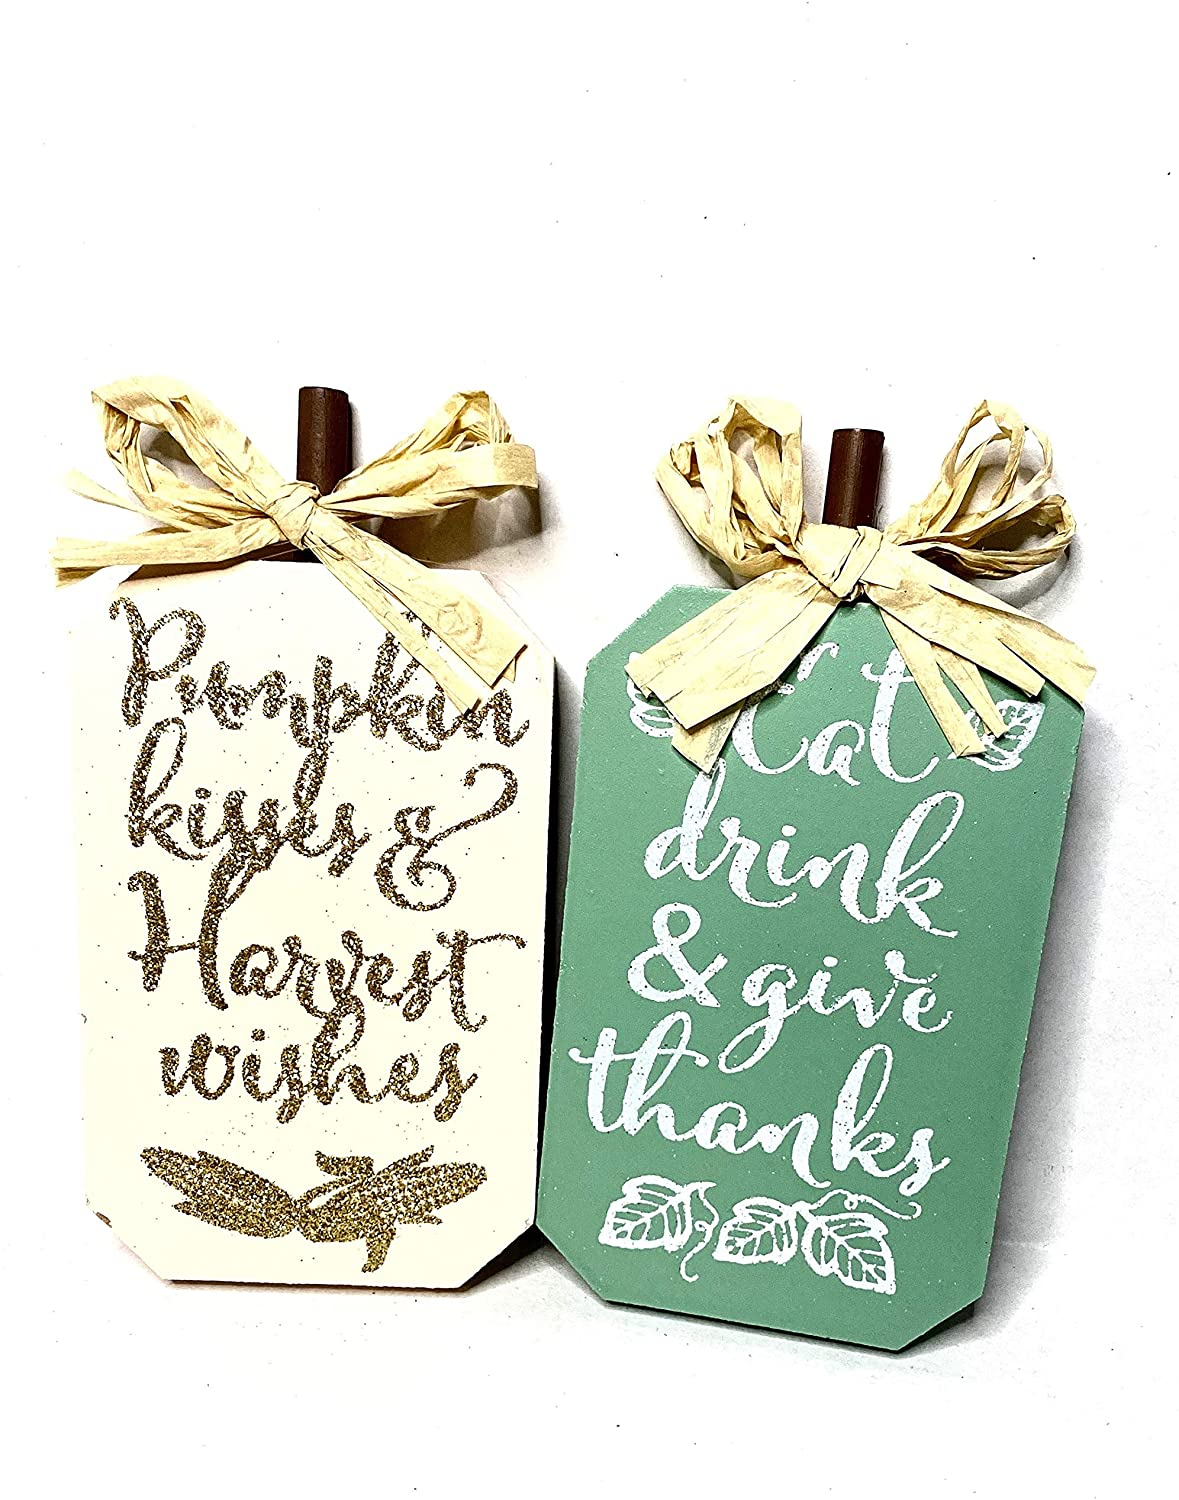 WTM- Miniature Fall Wooden Sign (2) Autumn Harvest Thanksgiving Holiday Table Signs Décor Decorations Bundle with a Touch of Fall- Each 3.5 x 5.25 inches